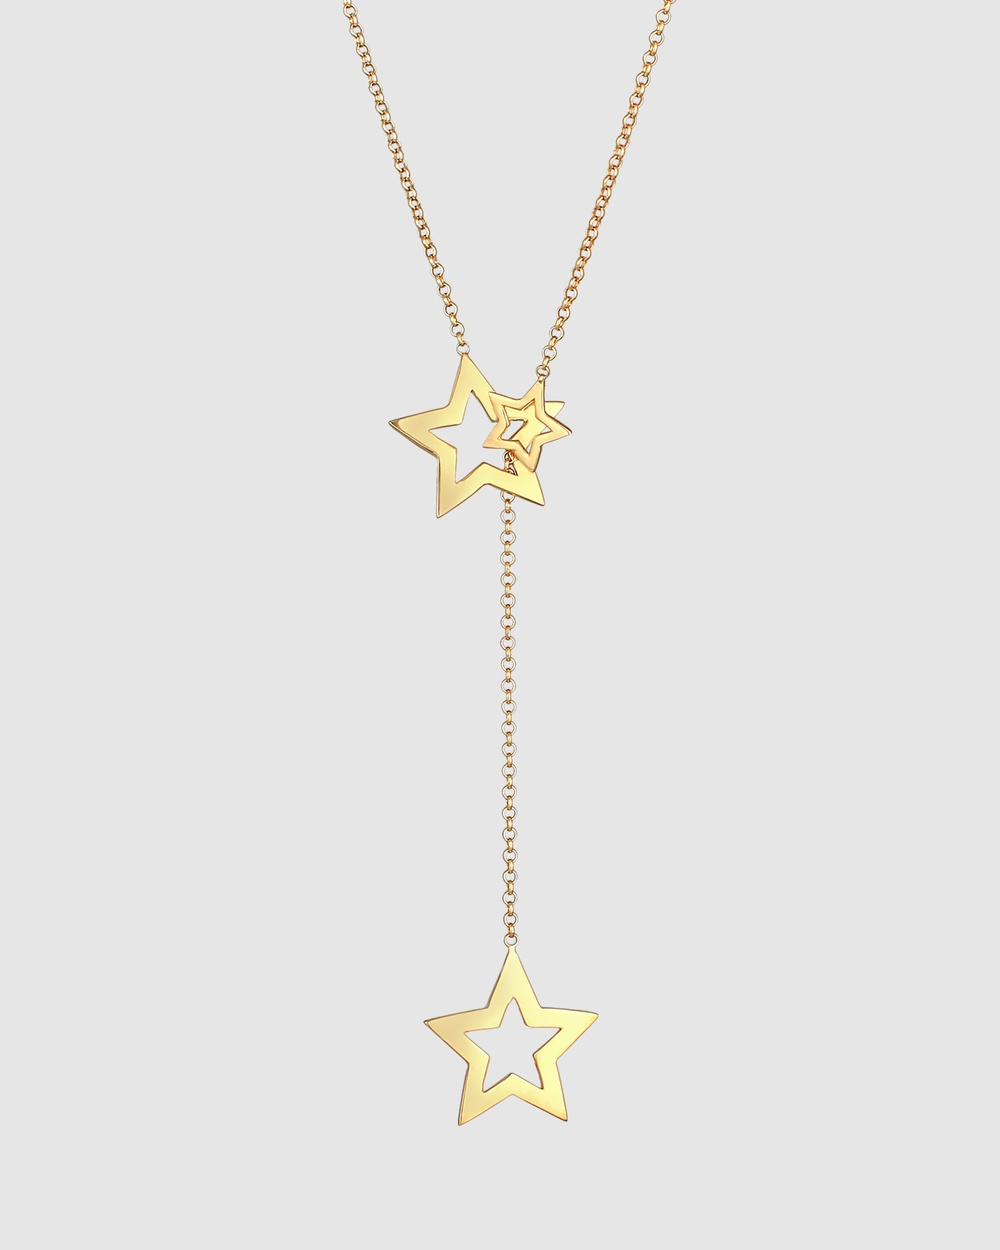 Elli Jewelry Necklace Y Shape Star Pendant Astro Trend in 925 Sterling Silver Gold Plated Jewellery Gold Y-Shape